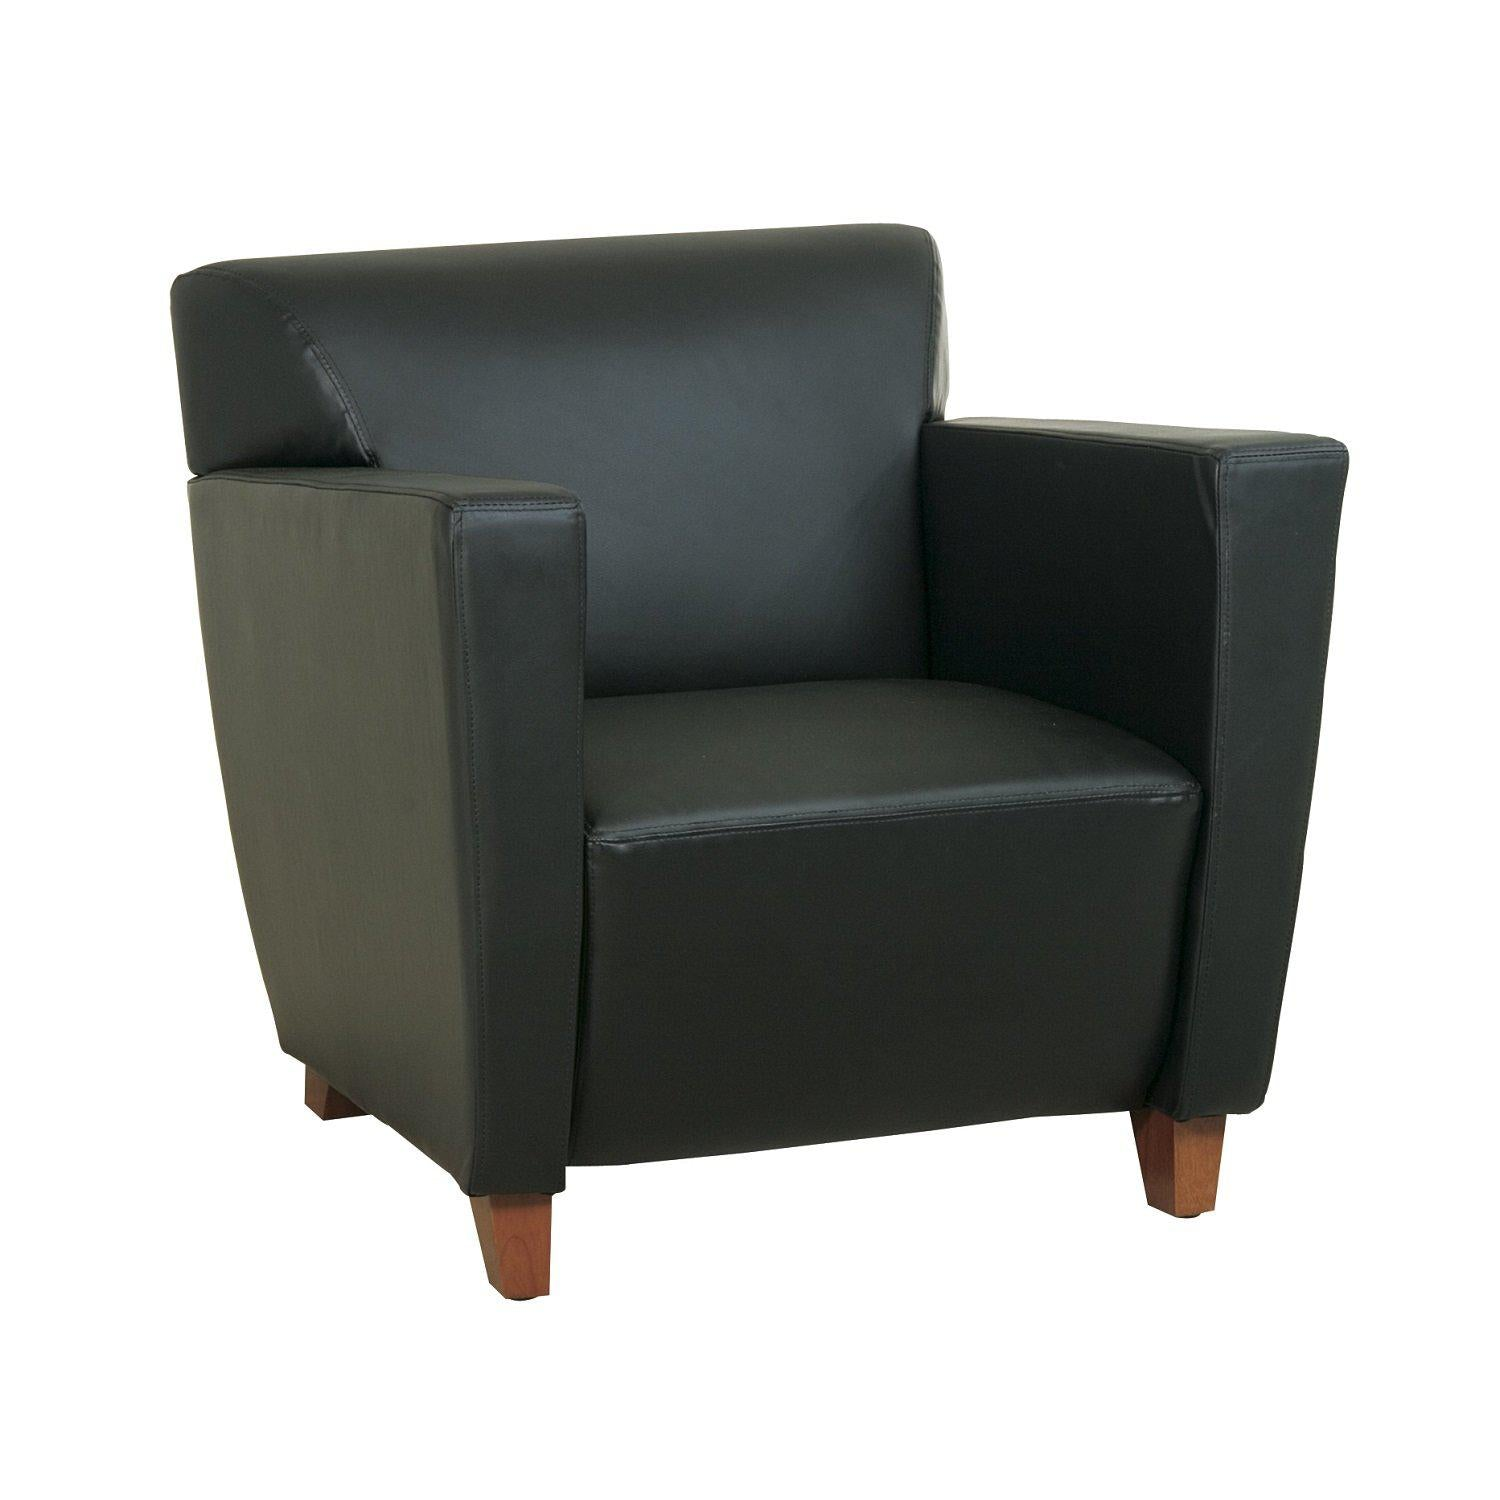 Black Bonded Leather Club Chair with Cherry Finish Legs